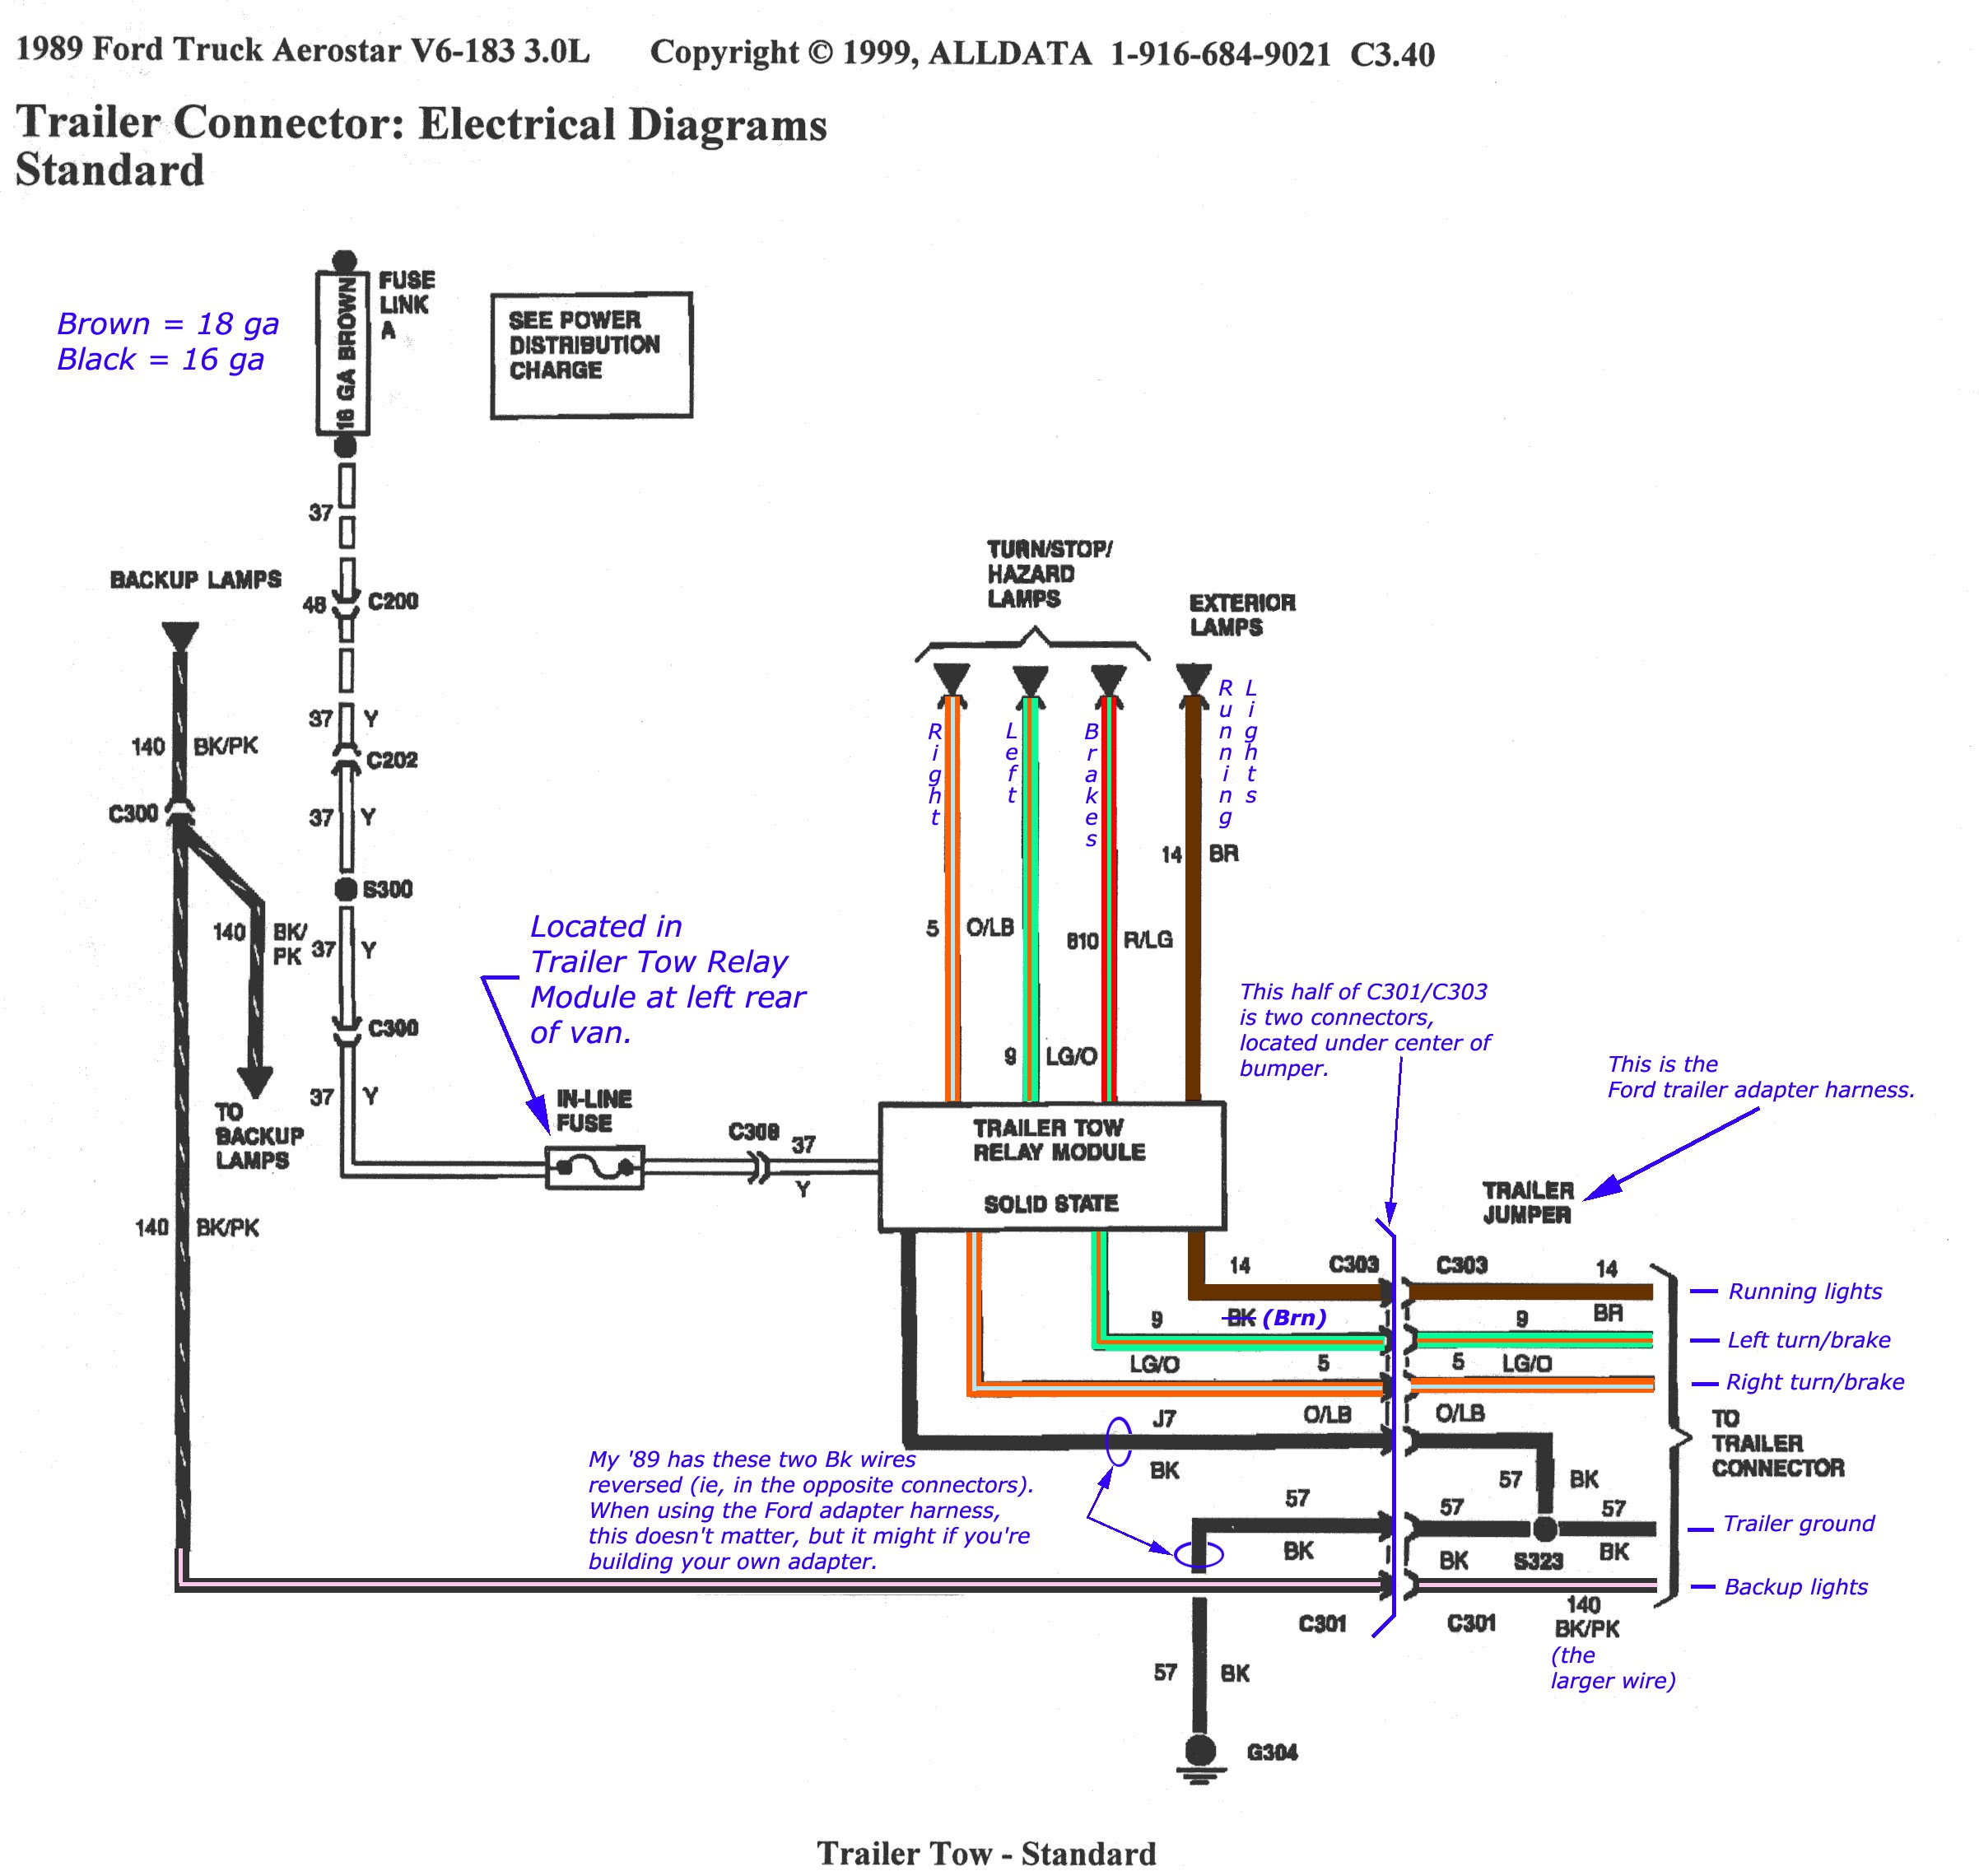 2010 Ford 6 4 Diesel Fuse Diagram Wiring Library 2001 F150 Box Info Expedition Trailer Plug List Of Schematic 2006 F350